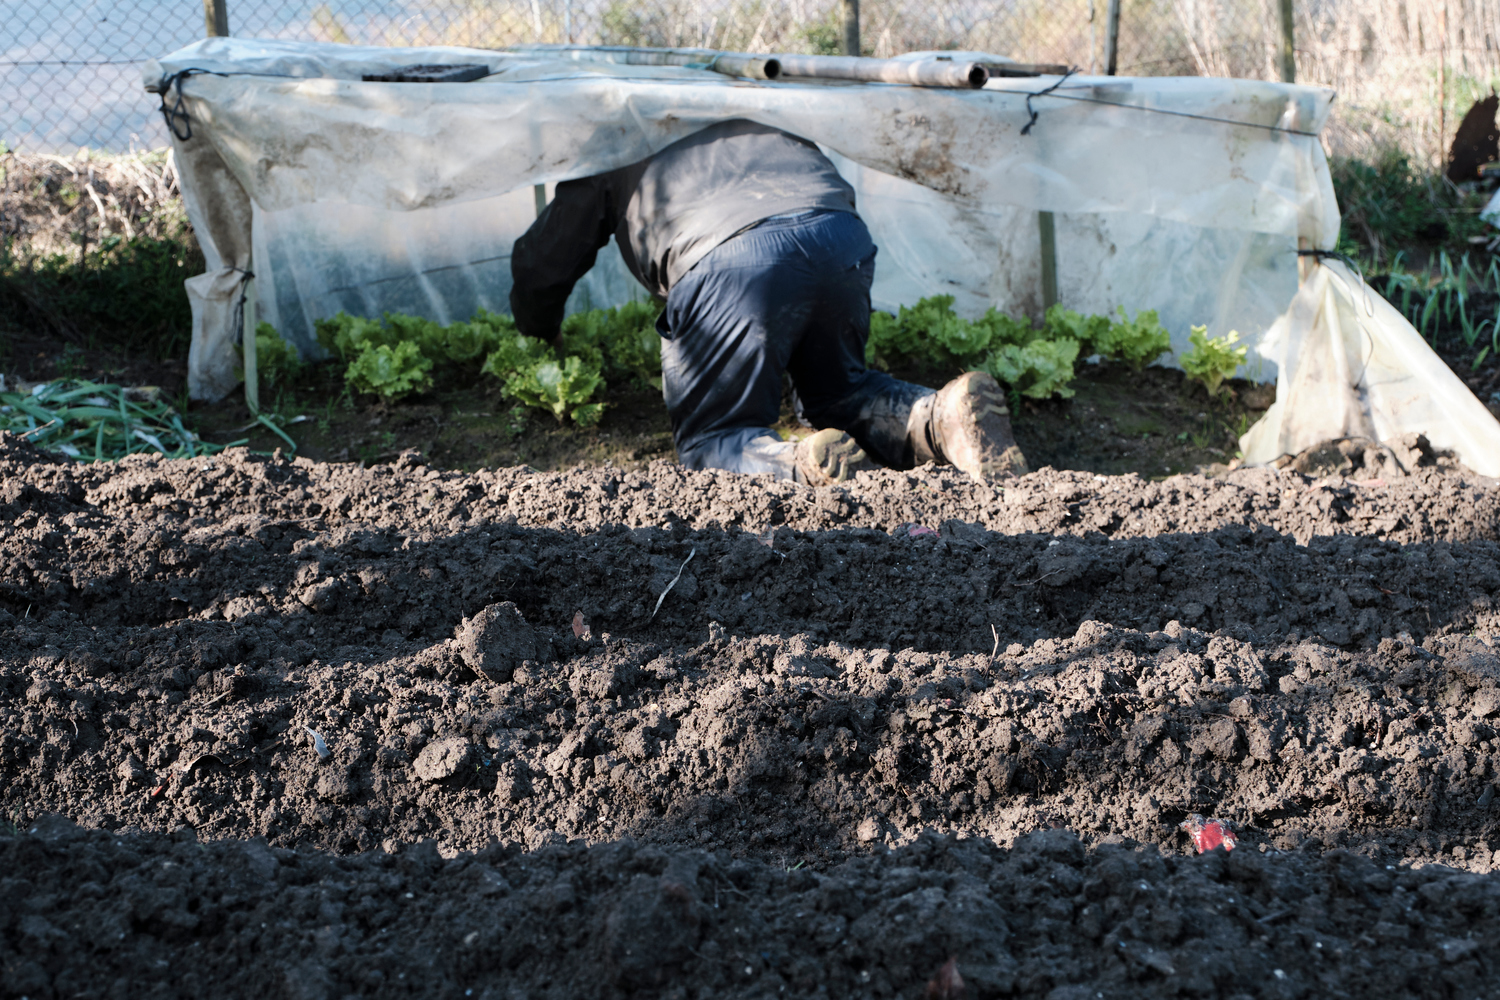 A man wearing rubber boots on his knees searching in a greenhouse full of lettuce.